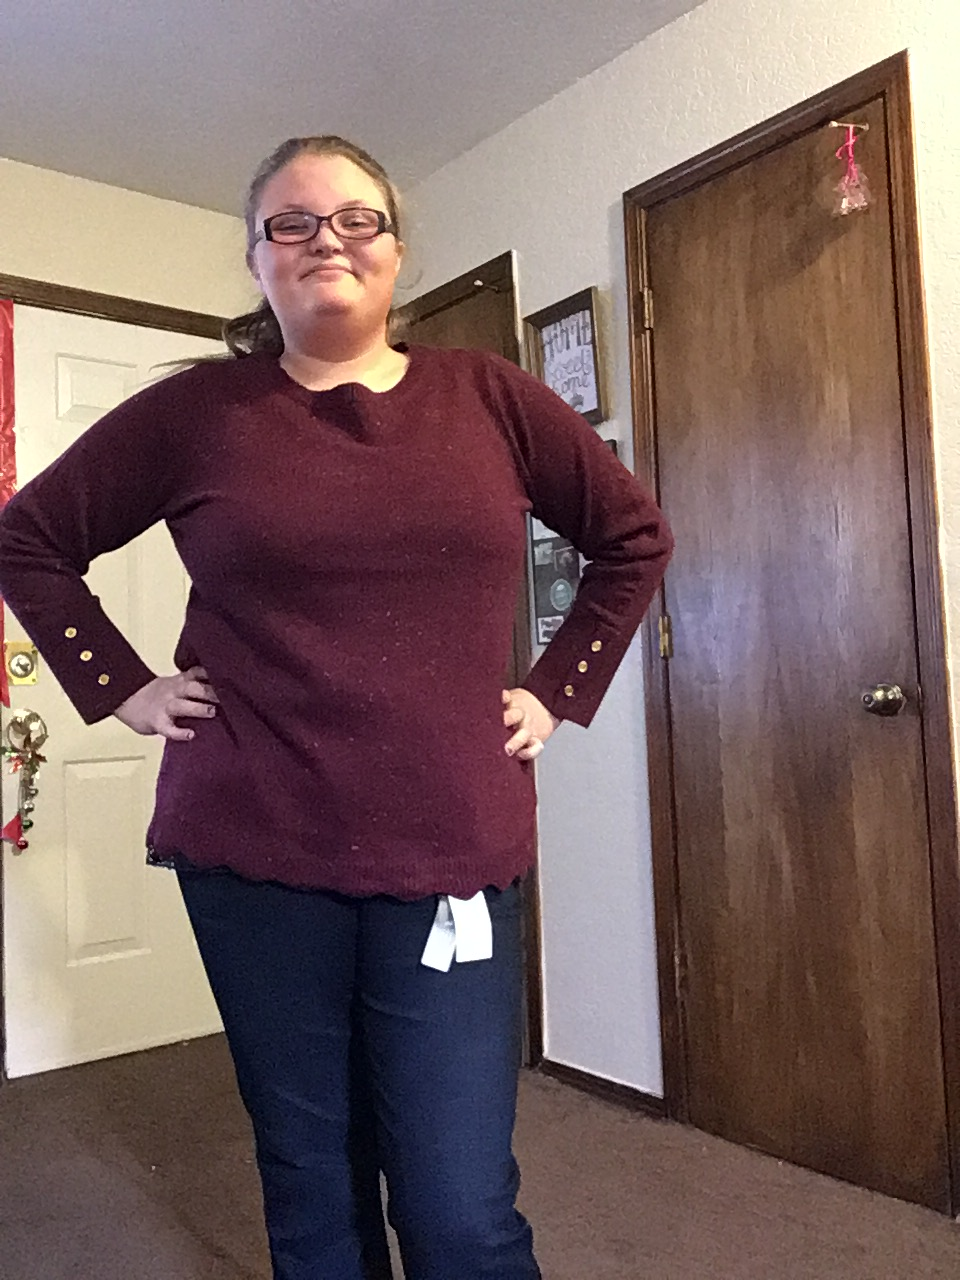 Me awkwardly posing to show off the jeans and sweater.